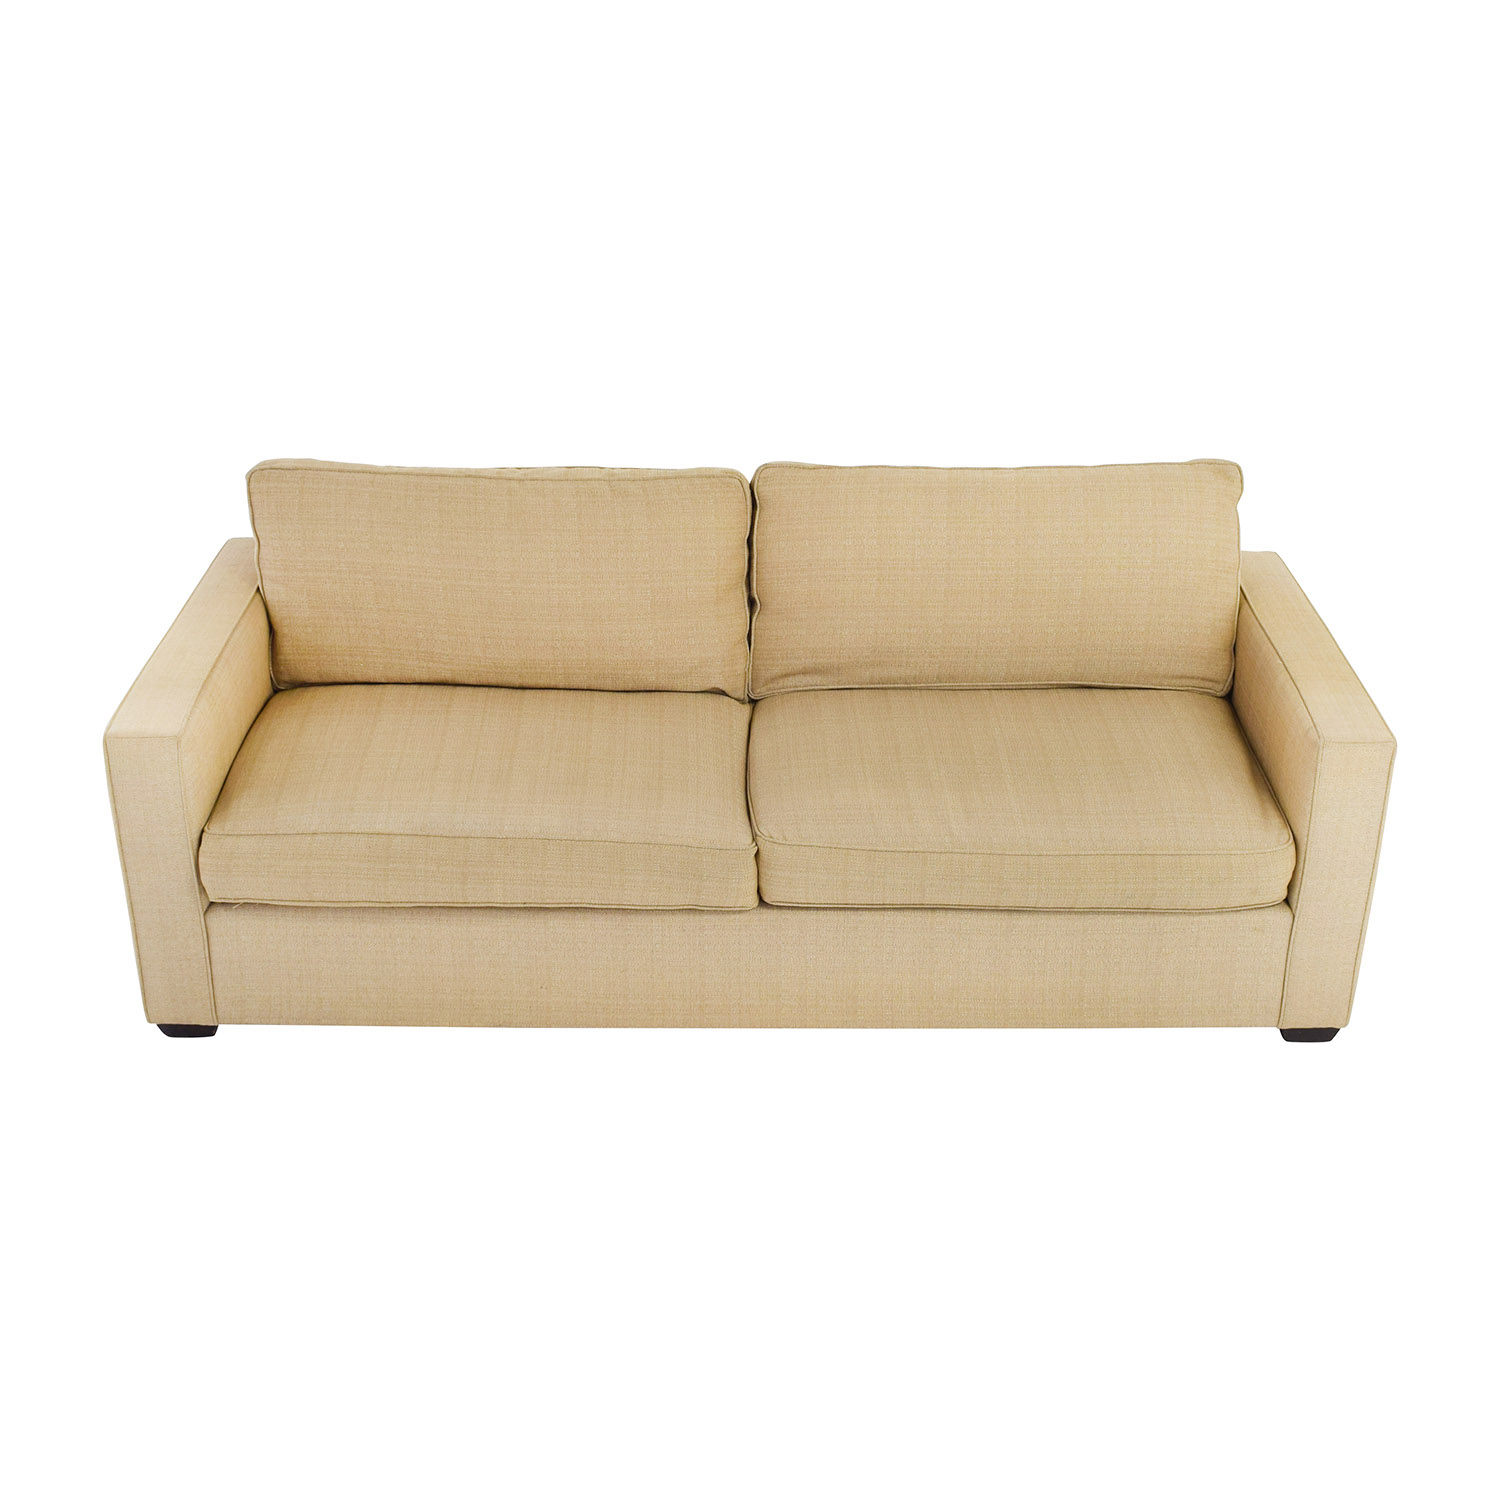 Room and Board Room & Board Beige Two Cushion Couch price